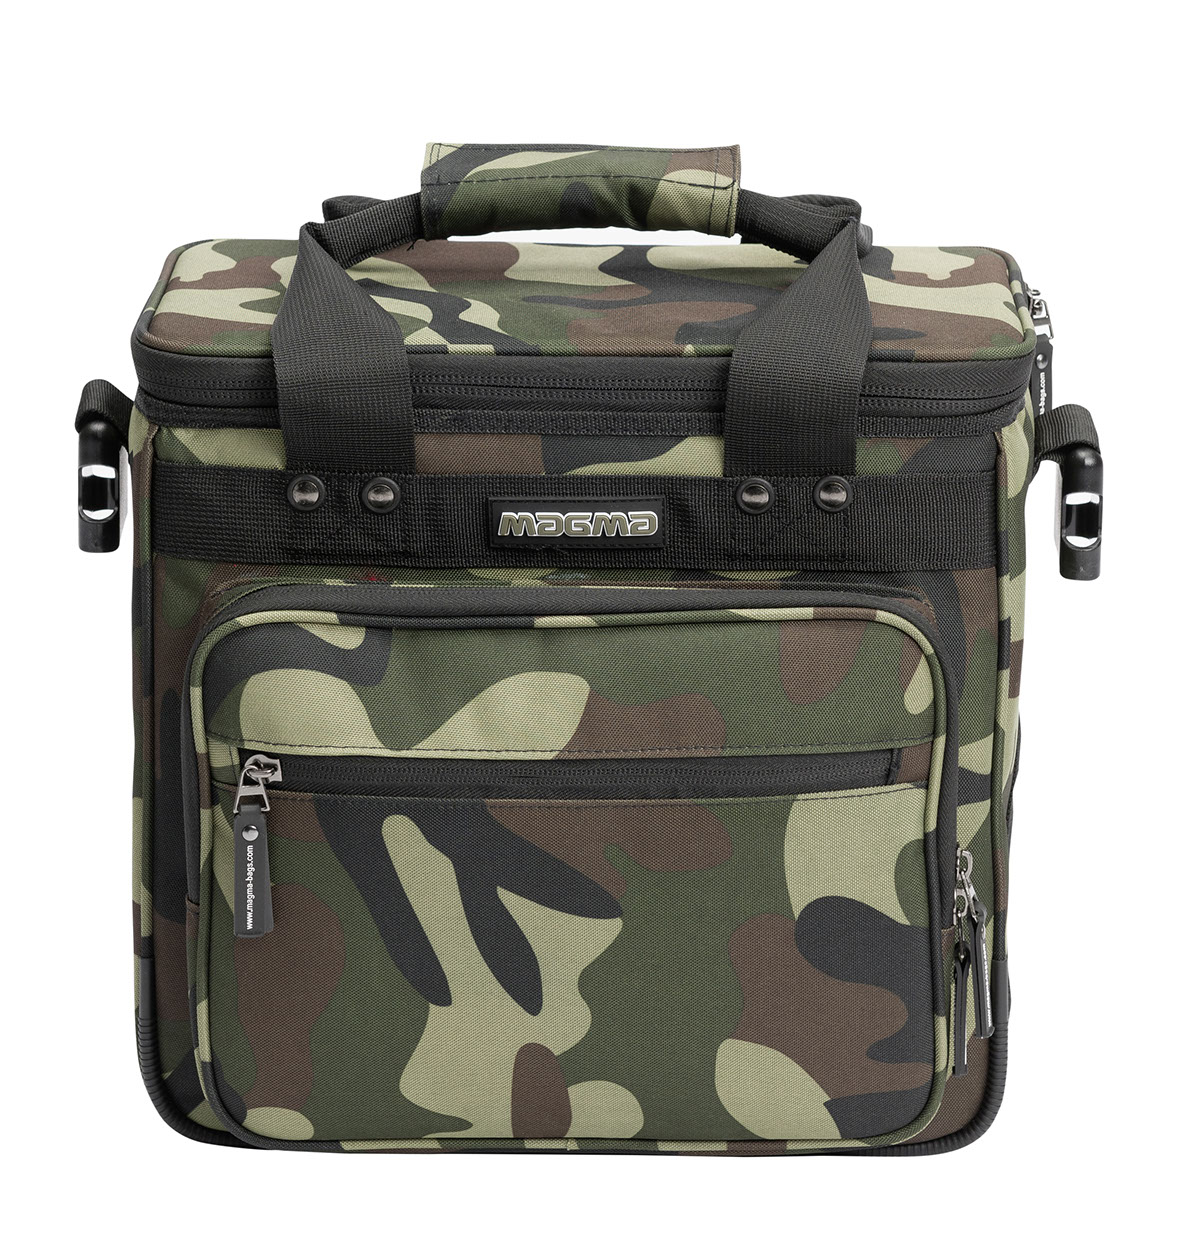 Magma-bags LP-Bag 50 Camo